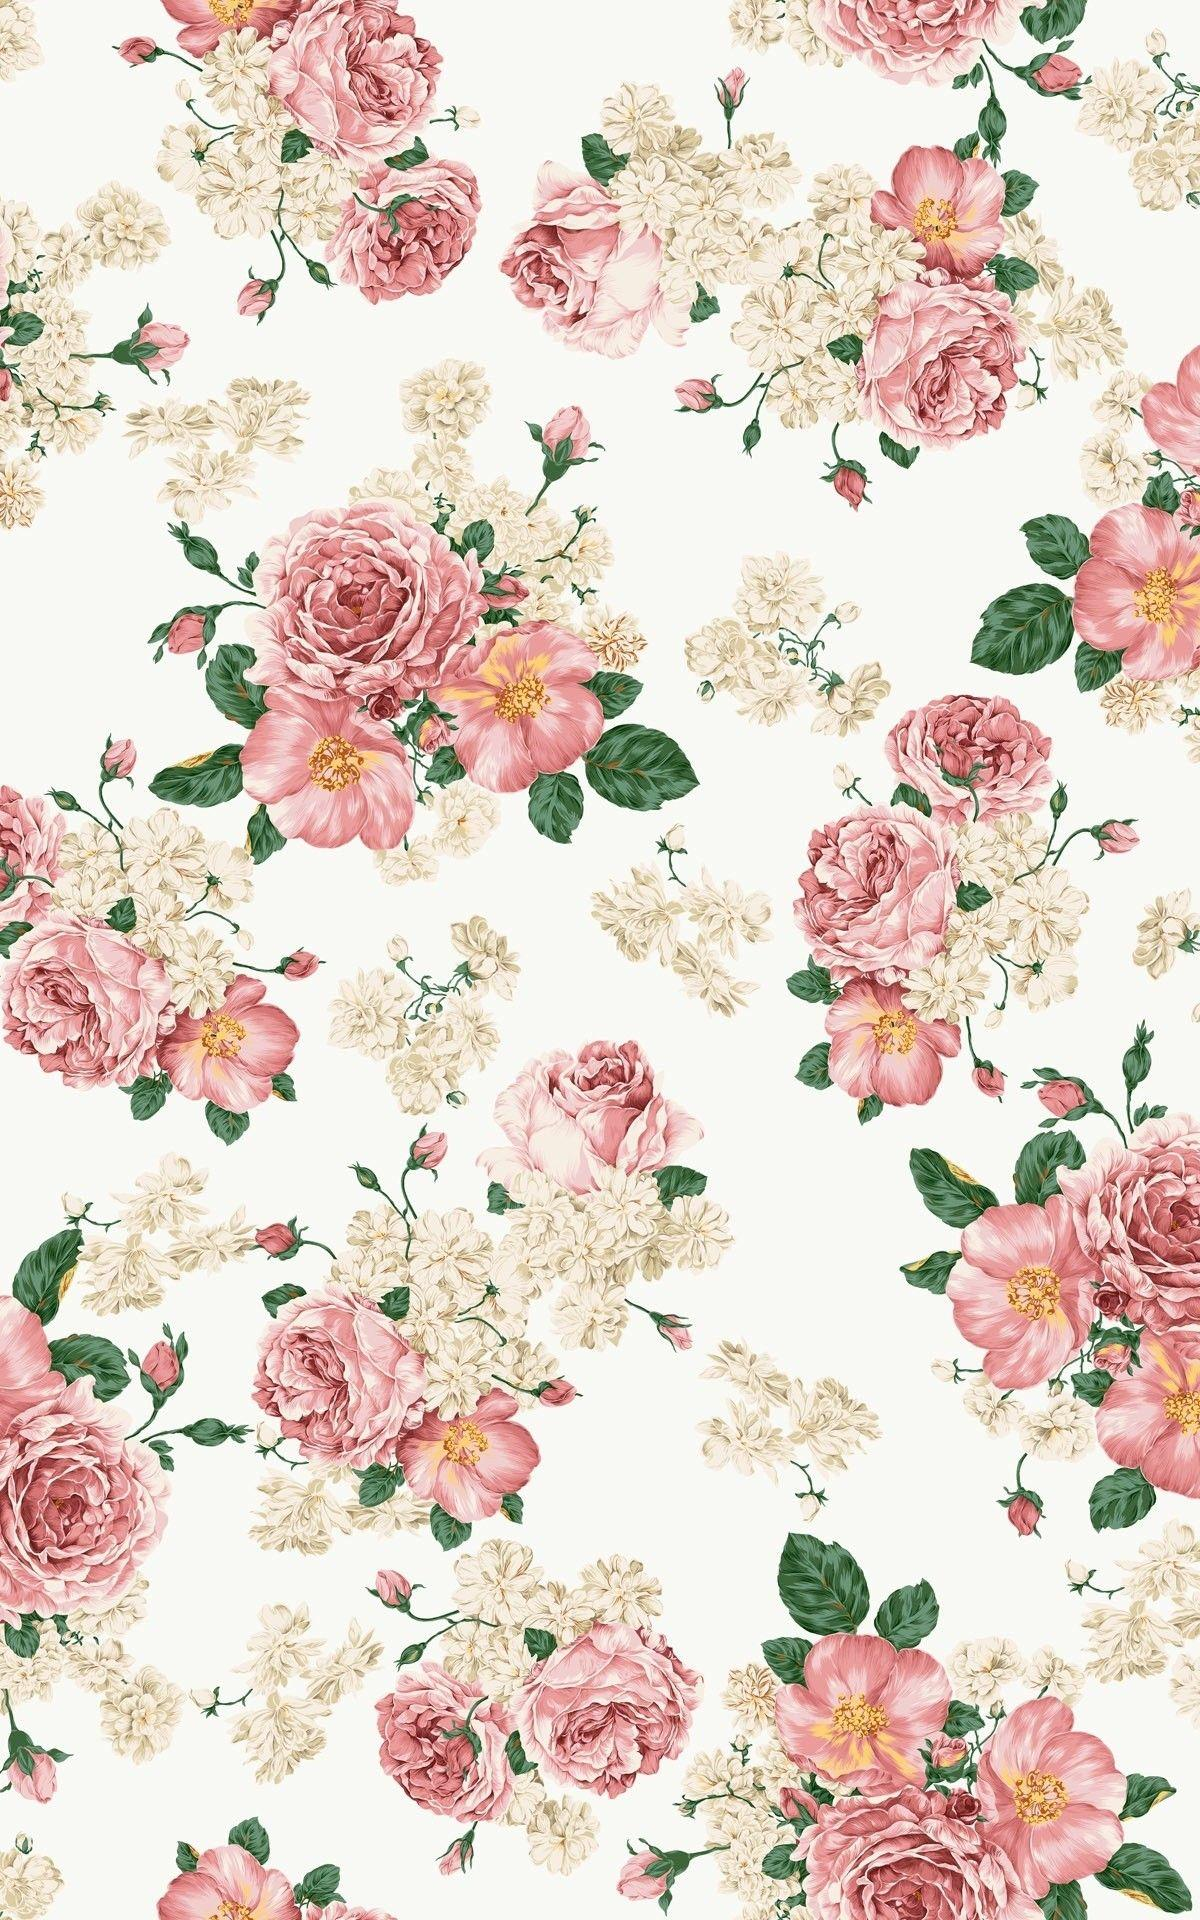 Floral Backgrounds Tumblr Wallpaper Cave